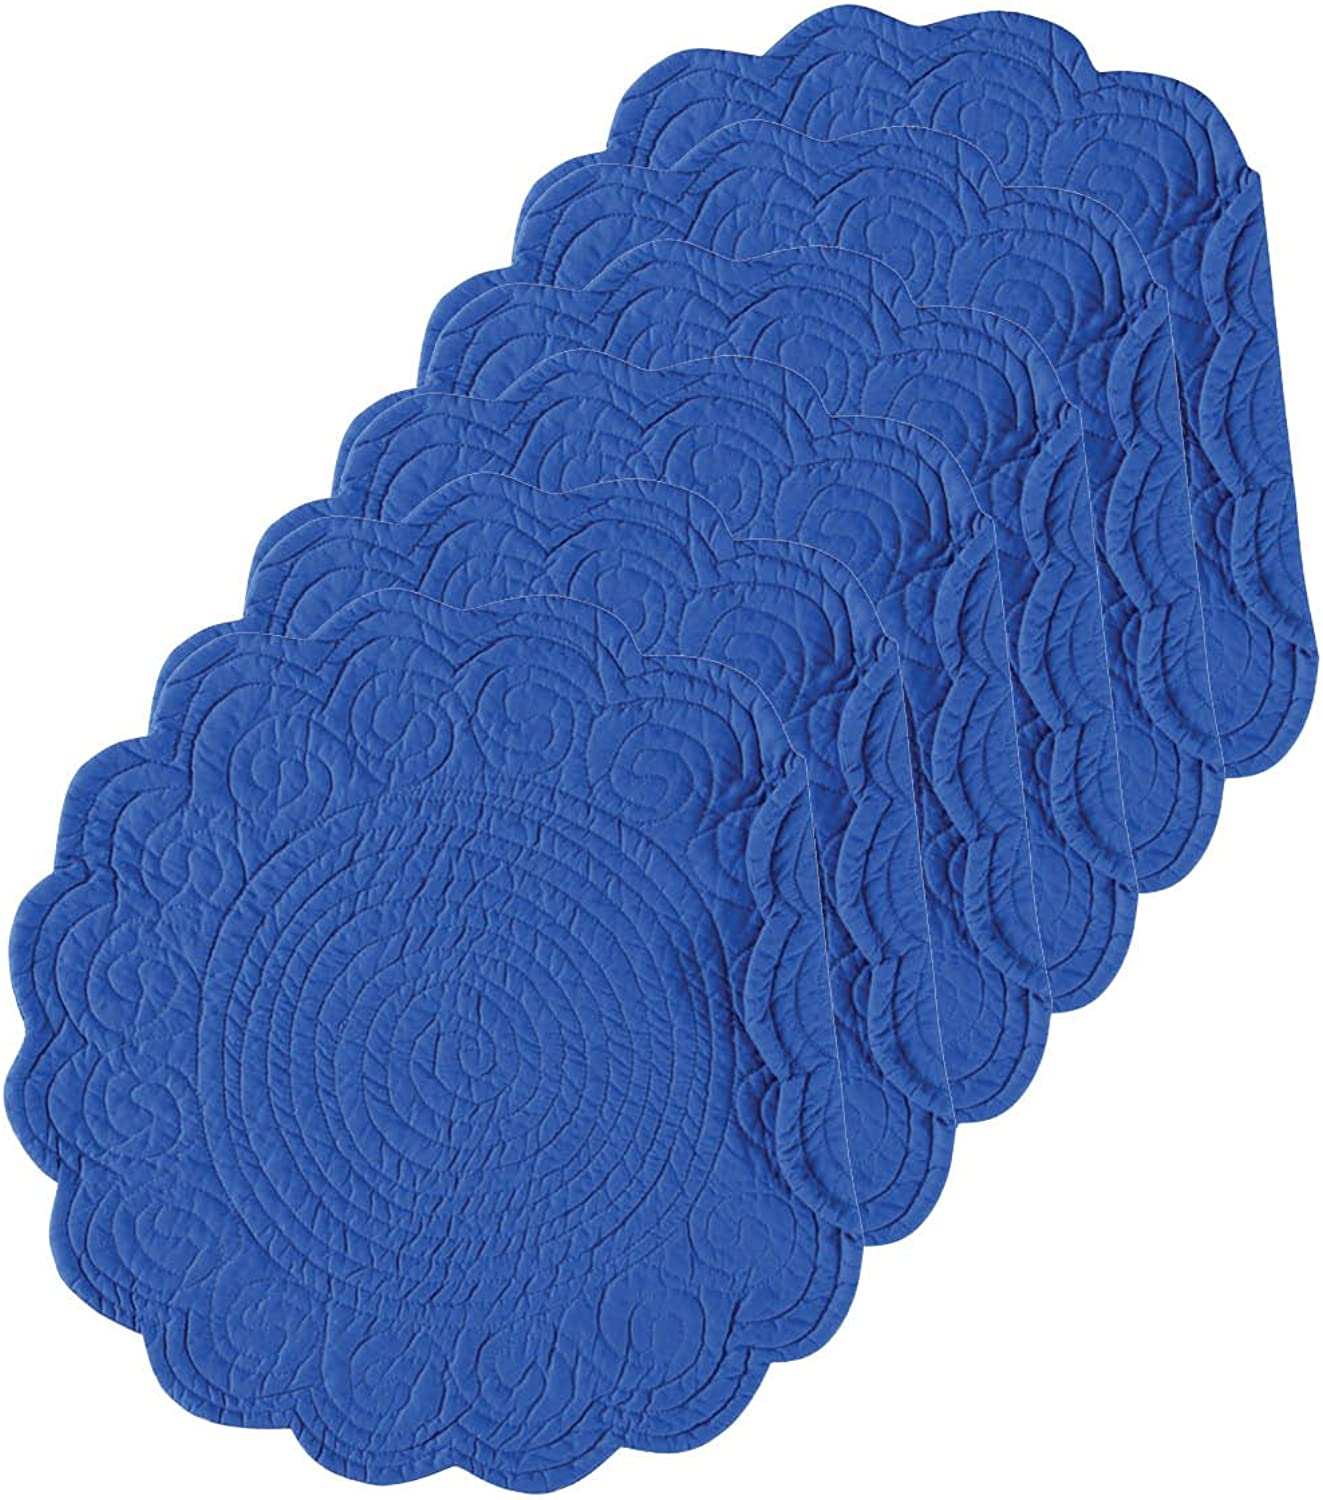 Ultramarine 17  Round Quilted Placemat Set of 6